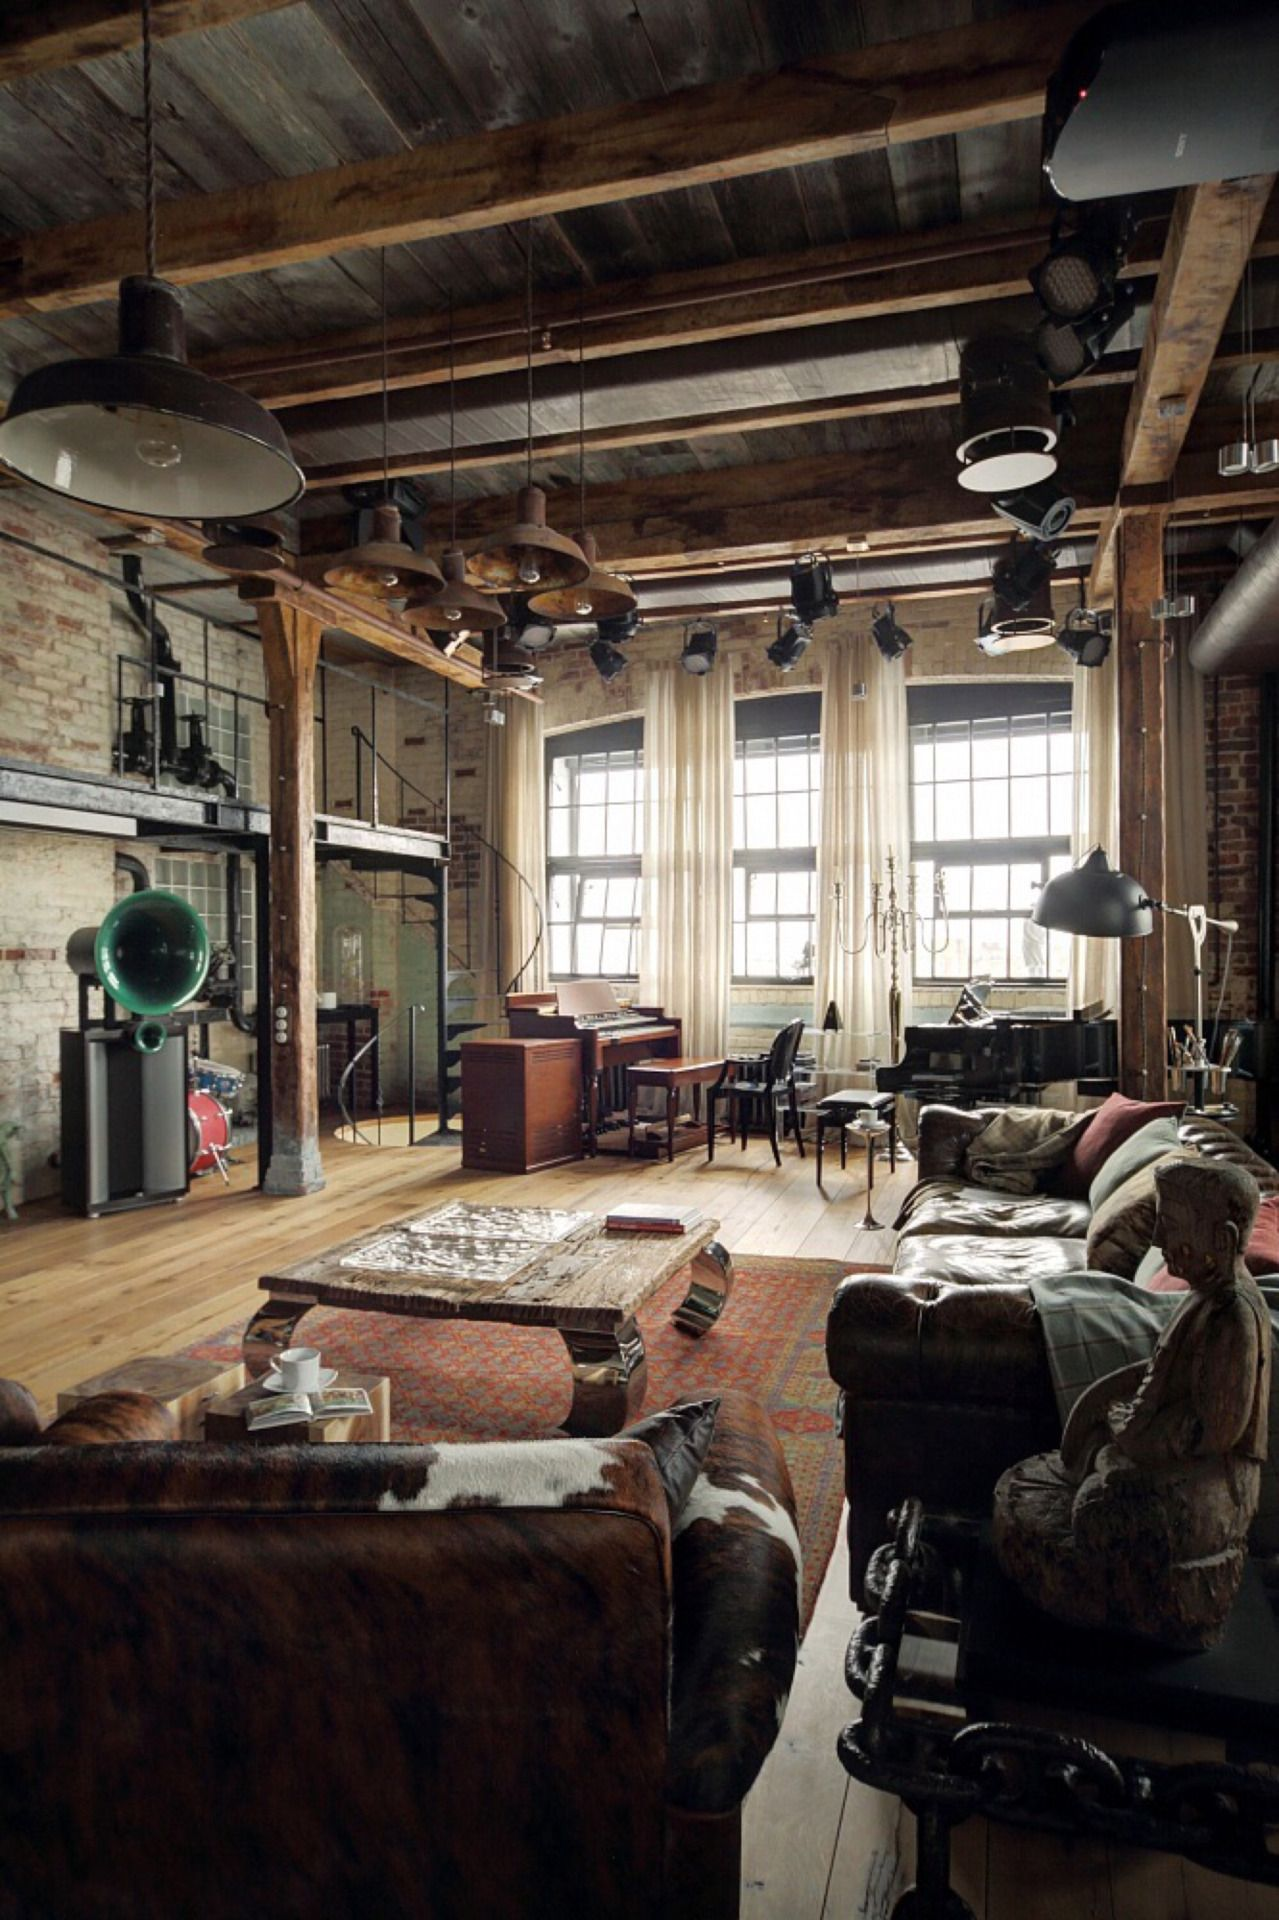 industrial lofts industrial lofts What's Hot On Pinterest Industrial Lofts Are Here! Whats Hot On Pinterest Industrial Lofts Are Here1